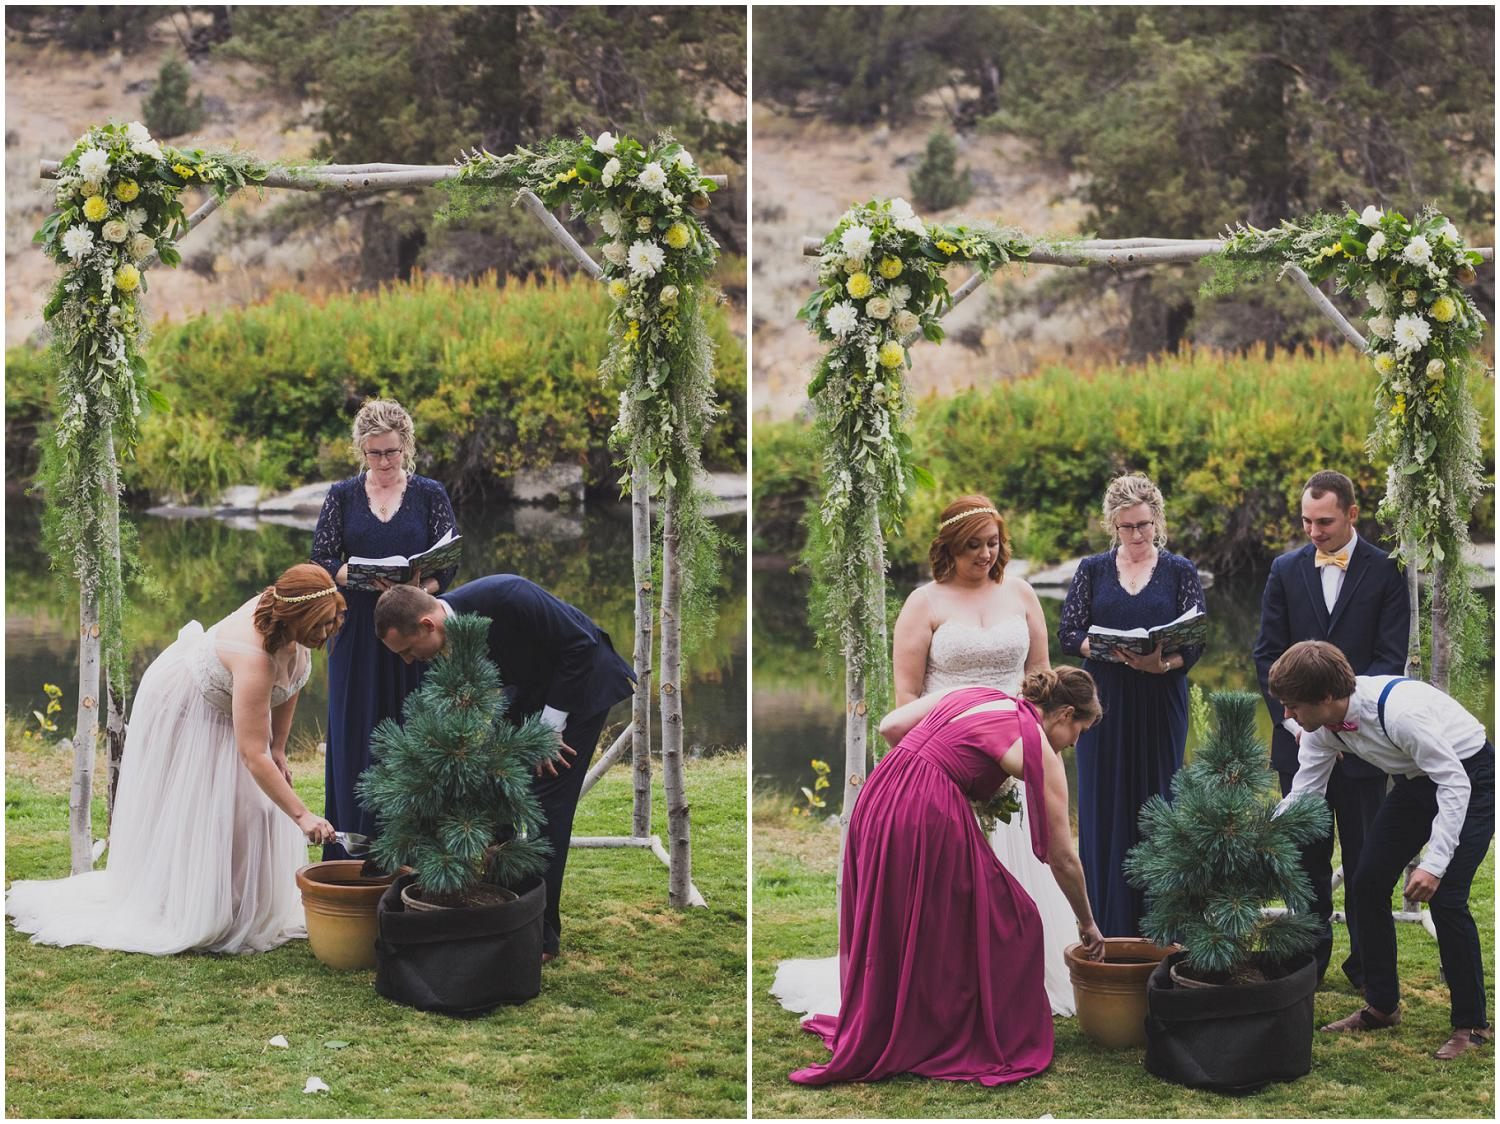 bride and groom add dirt to their unity tree, wedding party also adds dirt to pot